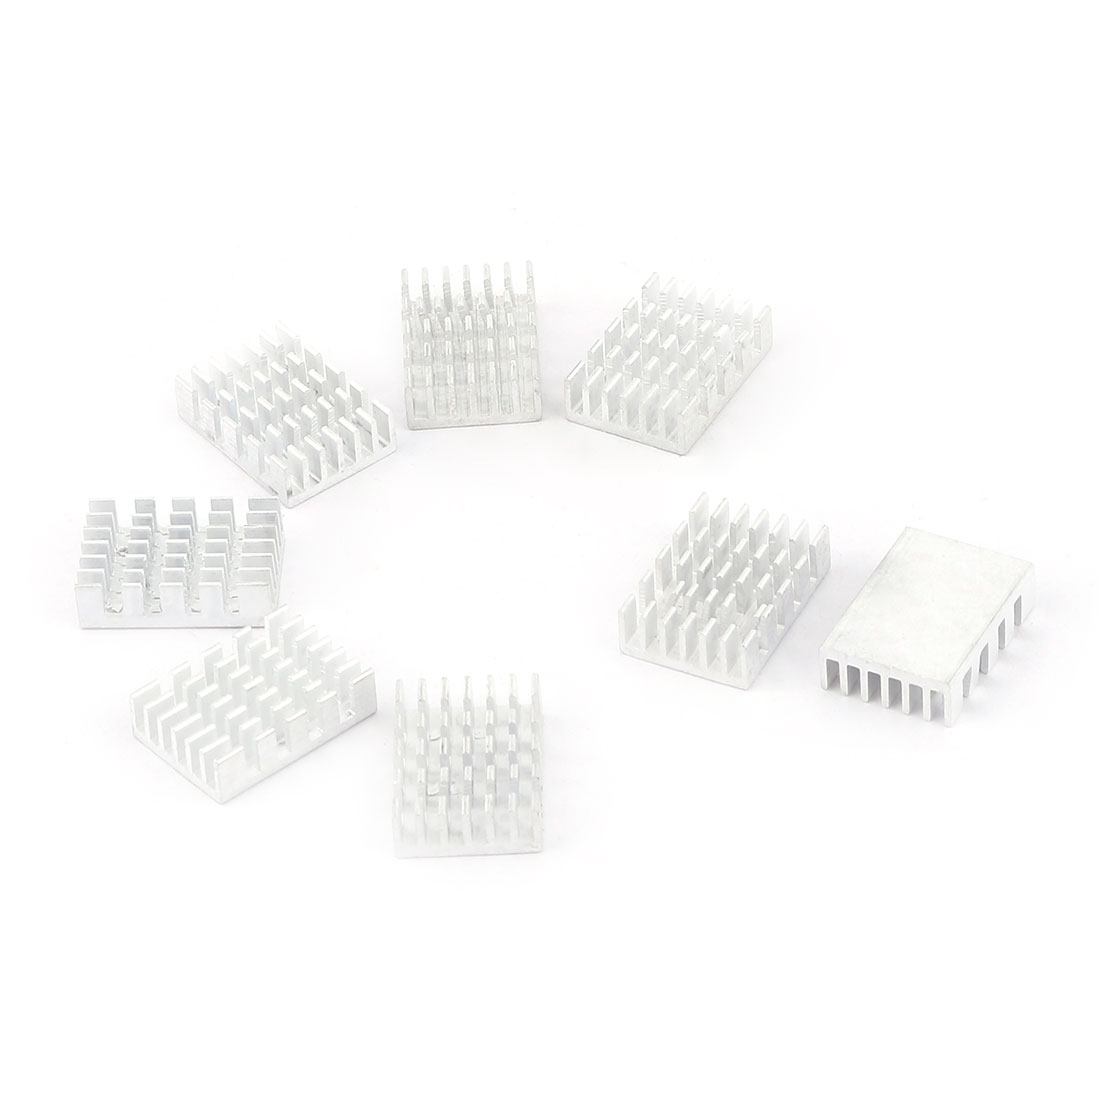 20mm x 14mm x 6mm LED Light Cooling Power Transistor Heatsink Cooler Silver Tone 8Pcs